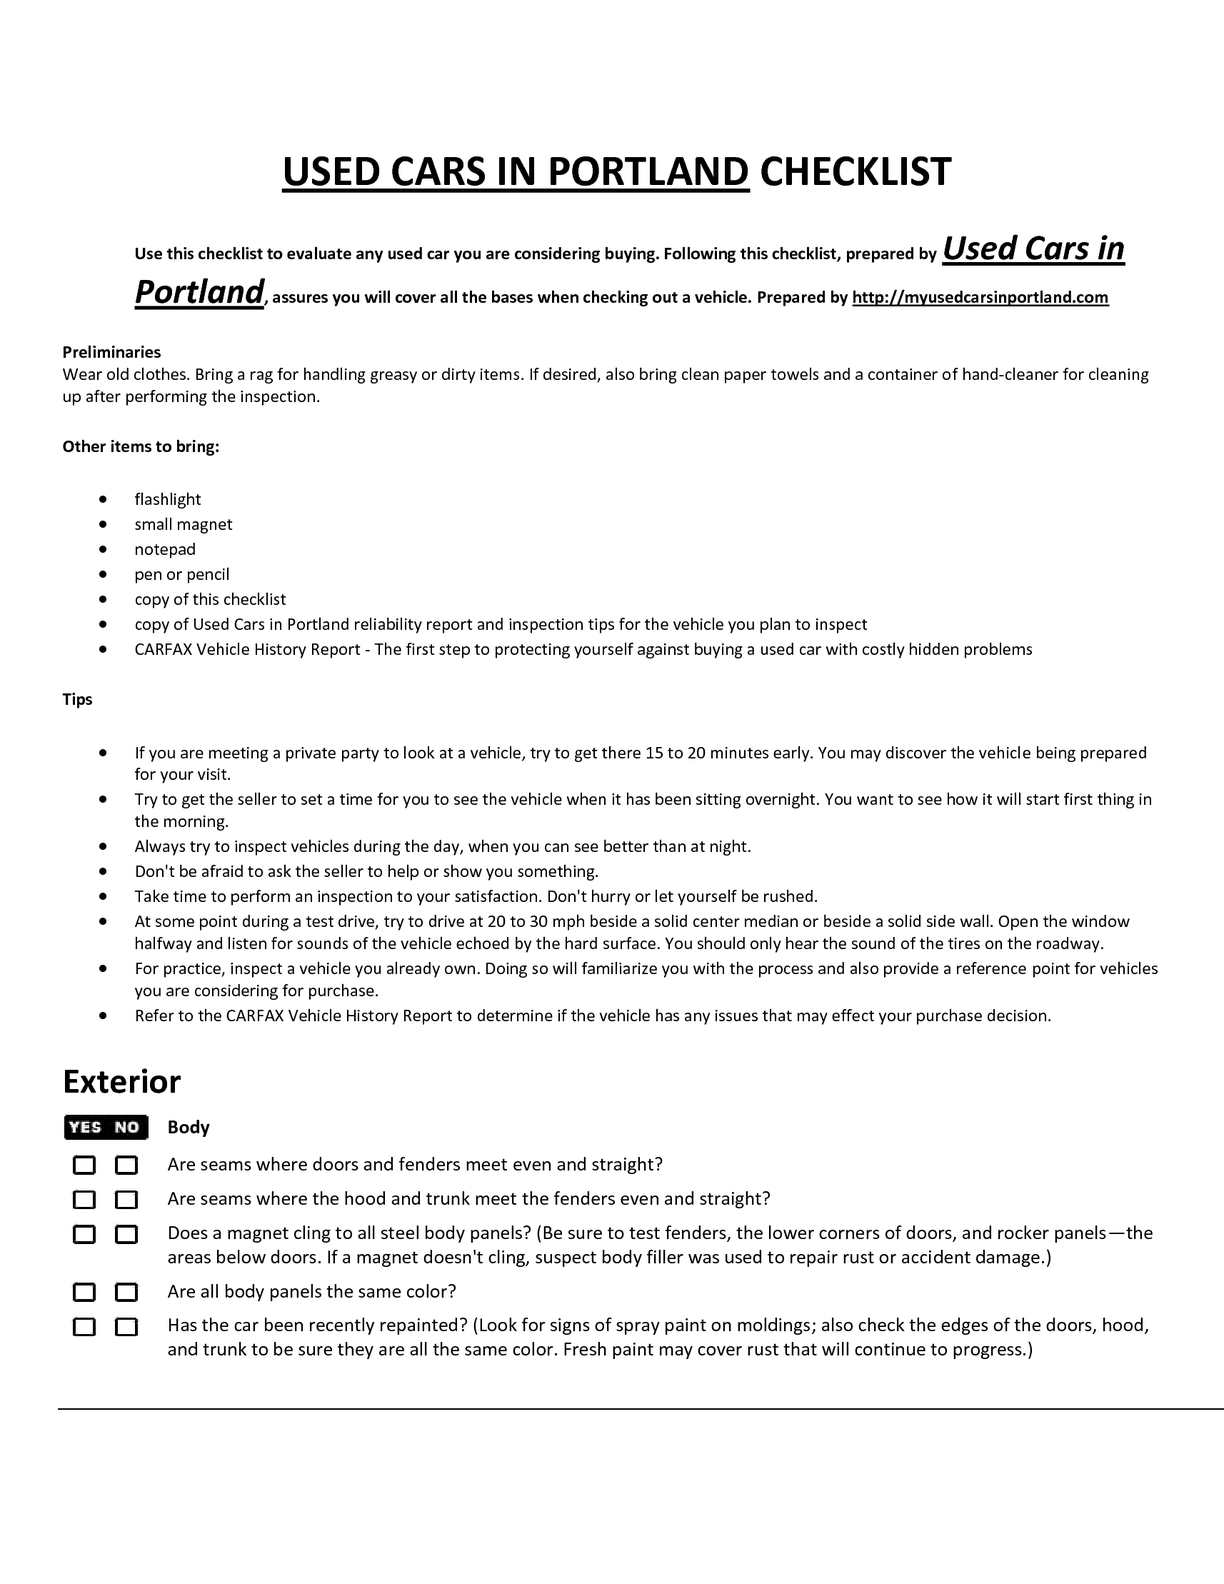 Calameo Used Cars In Portland Car Buying Checklist